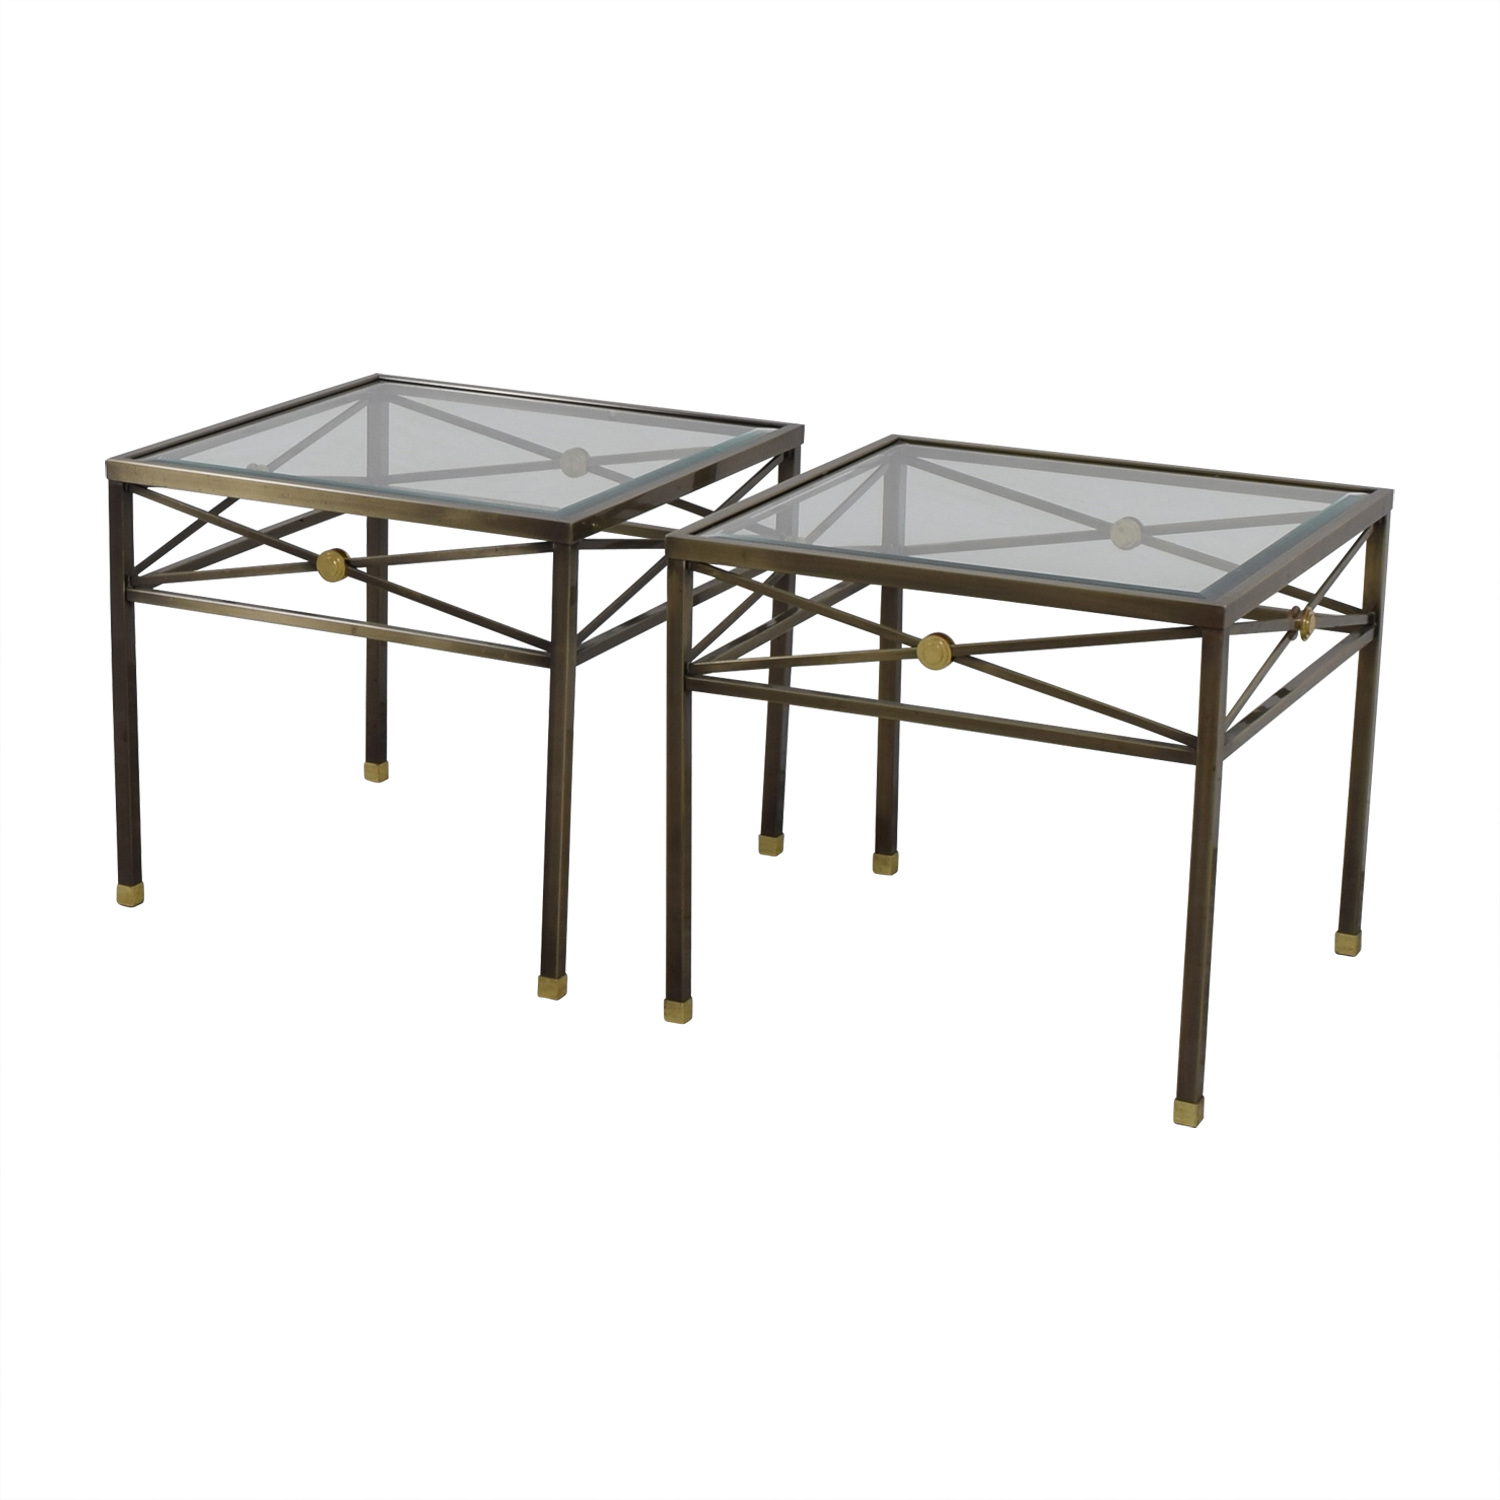 Glass Coffee Table Macys: Macy's Macy's Glass And Brass Side Tables / Tables